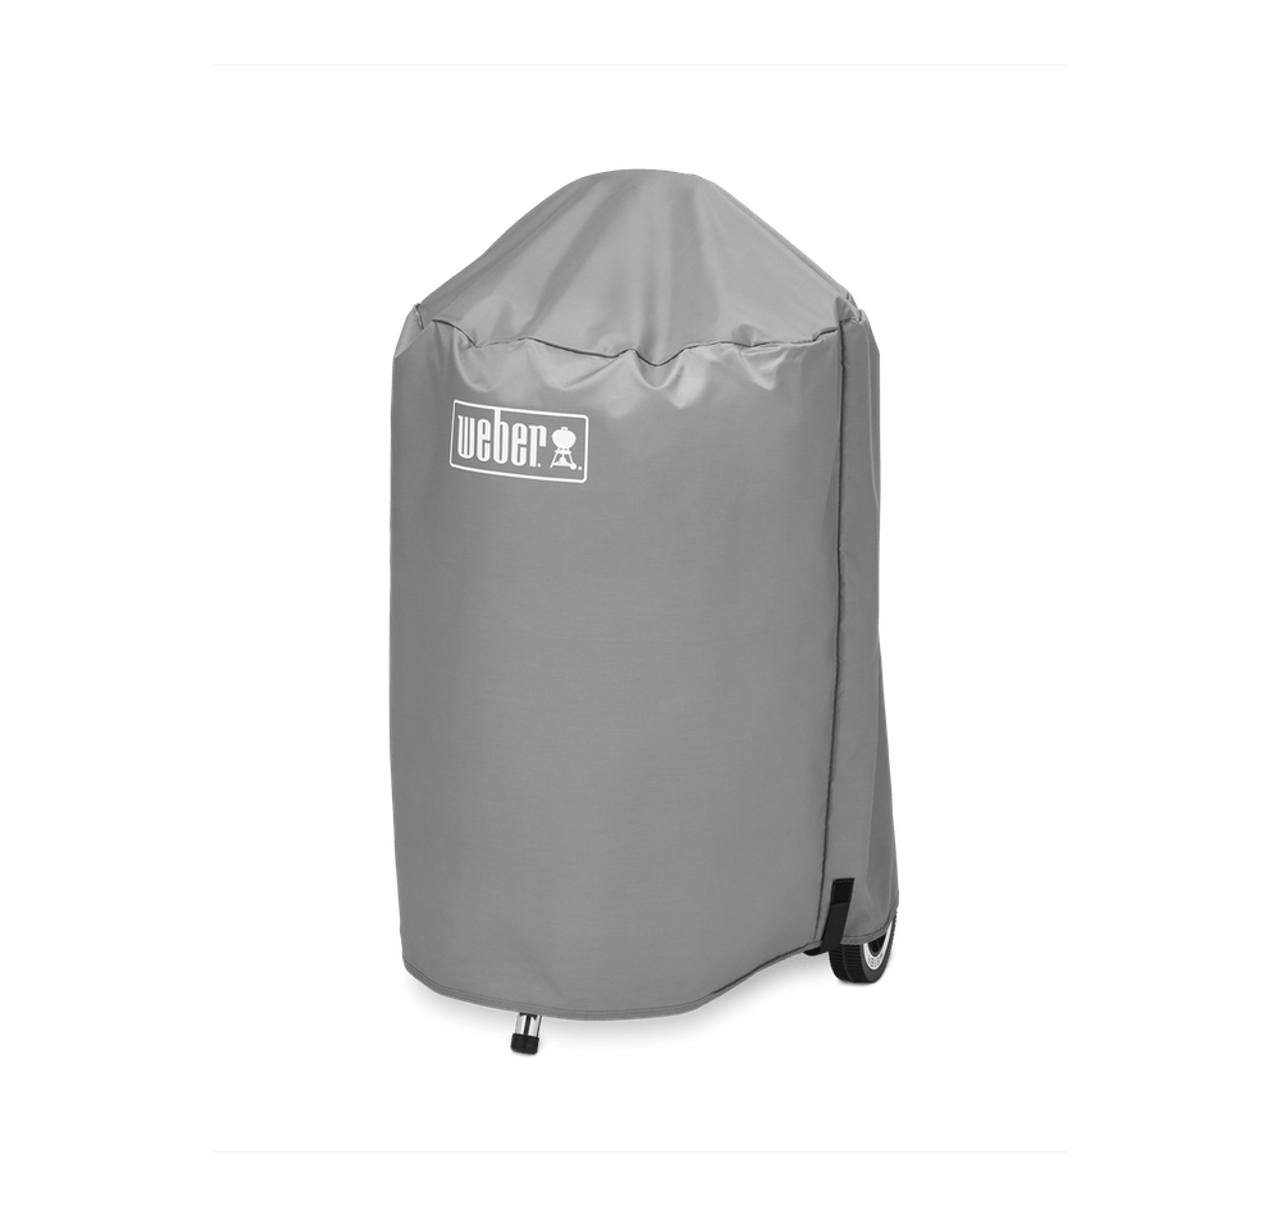 Weber Grill Cover - Fits 47cm Charcoal Grills